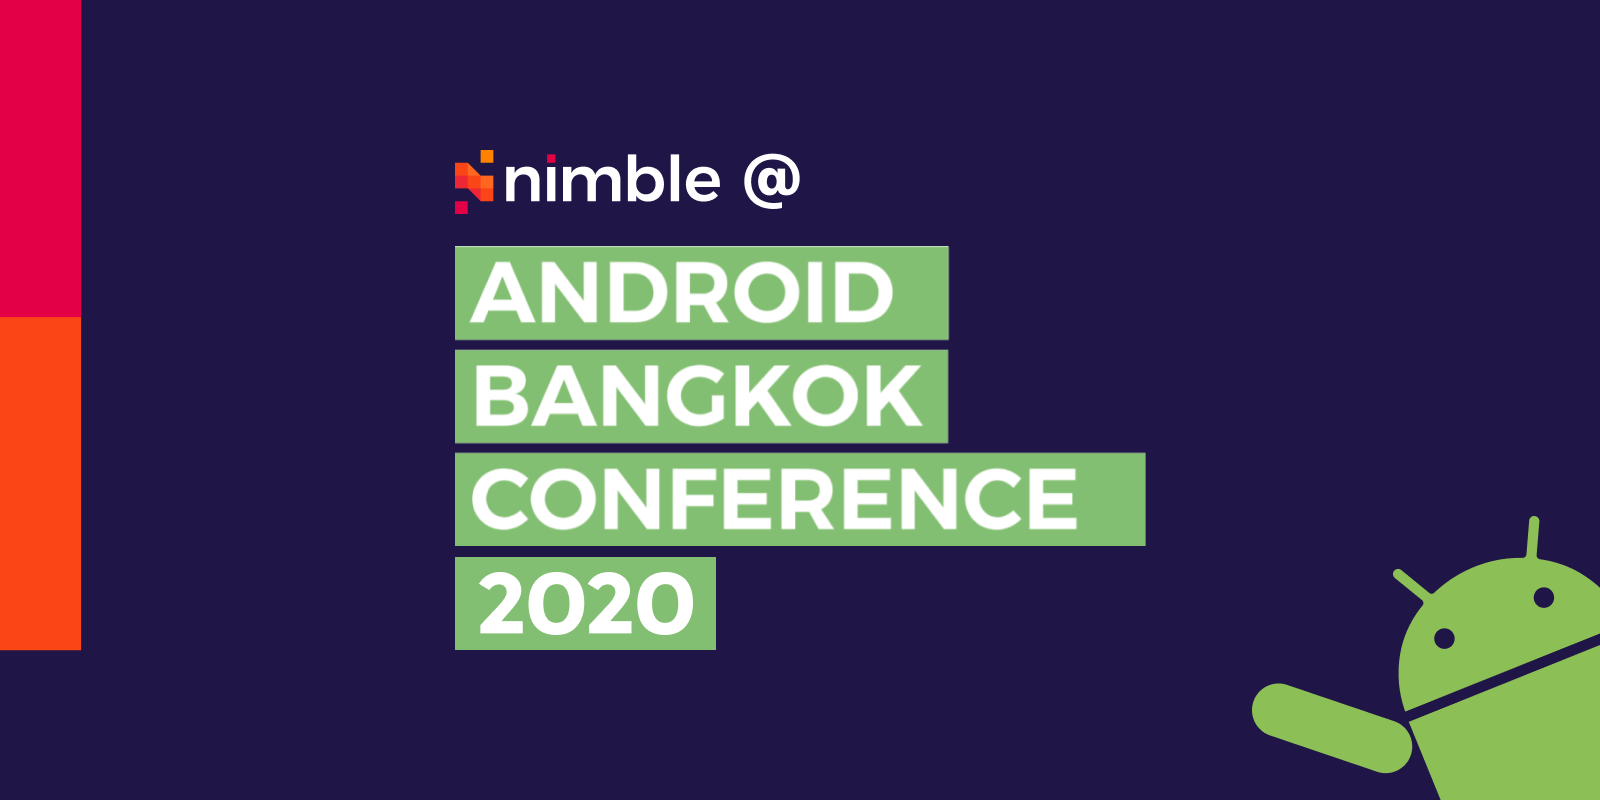 Android Bangkok Conference 2020